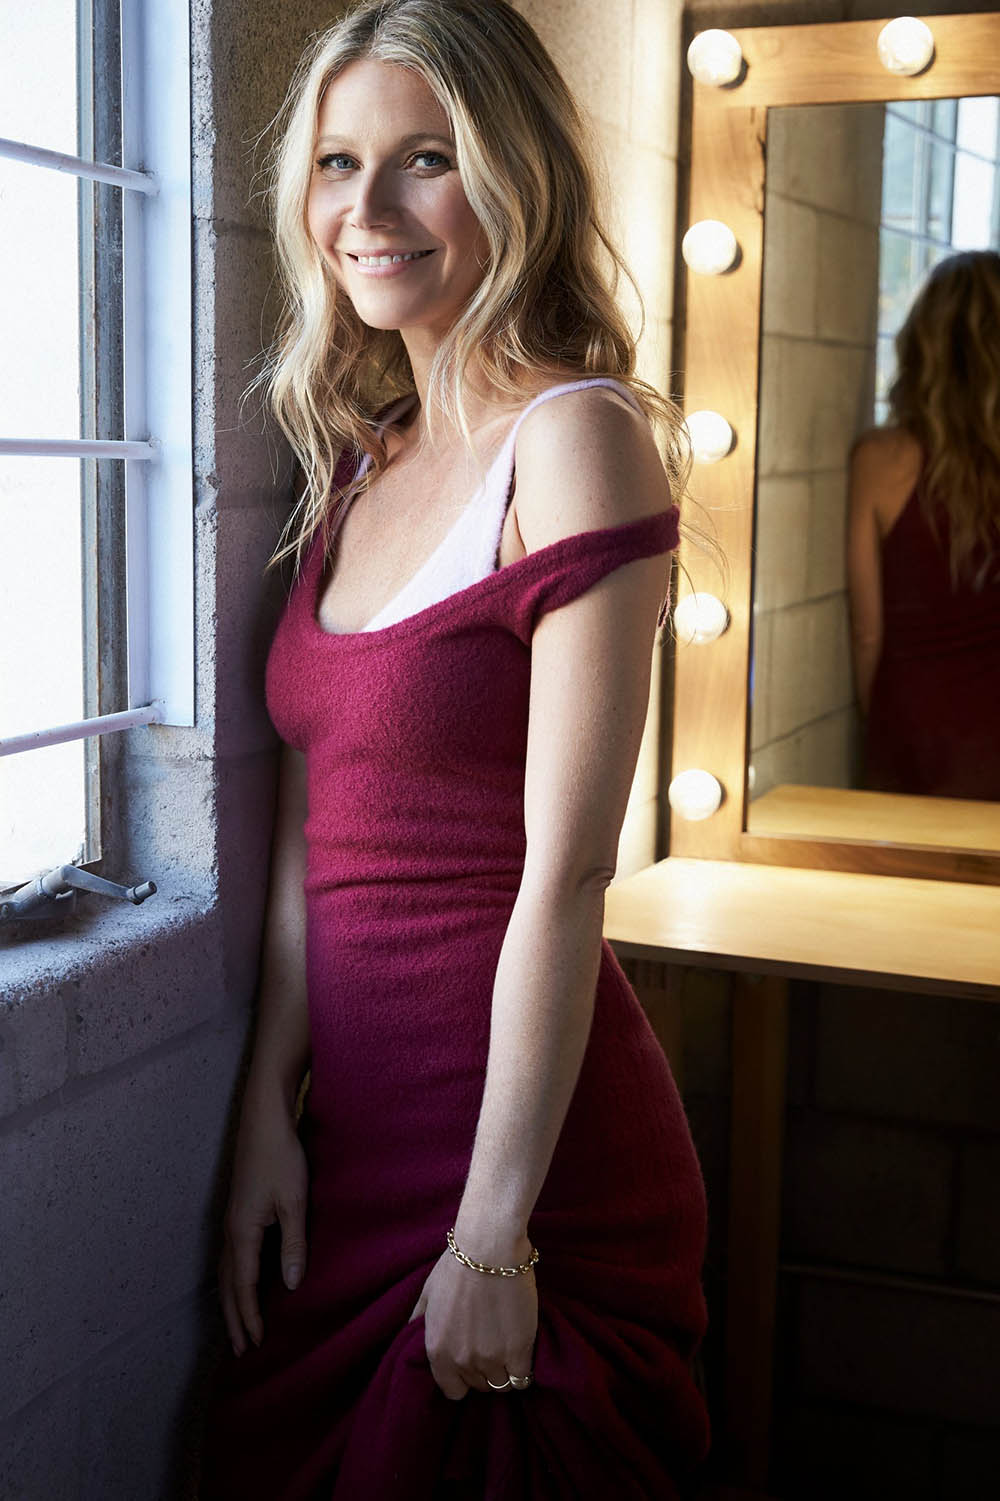 Gwyneth Paltrow by Coliena Rentmester for ES Magazine January 18, 2019 (5).jpg